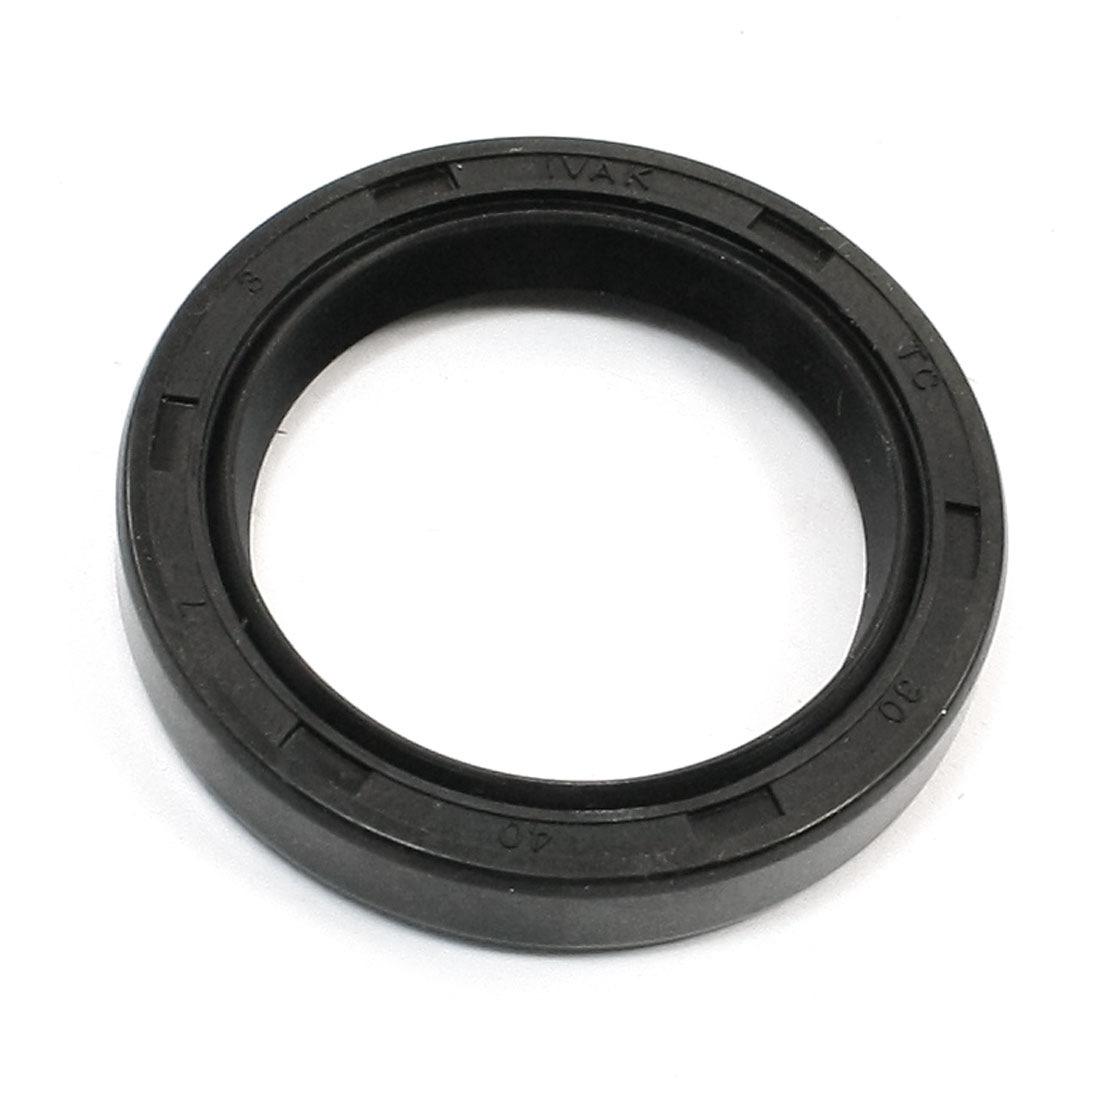 40mm x 30mm x 7mm Rubber Spring Oil Seal Ring Sealing Gasket